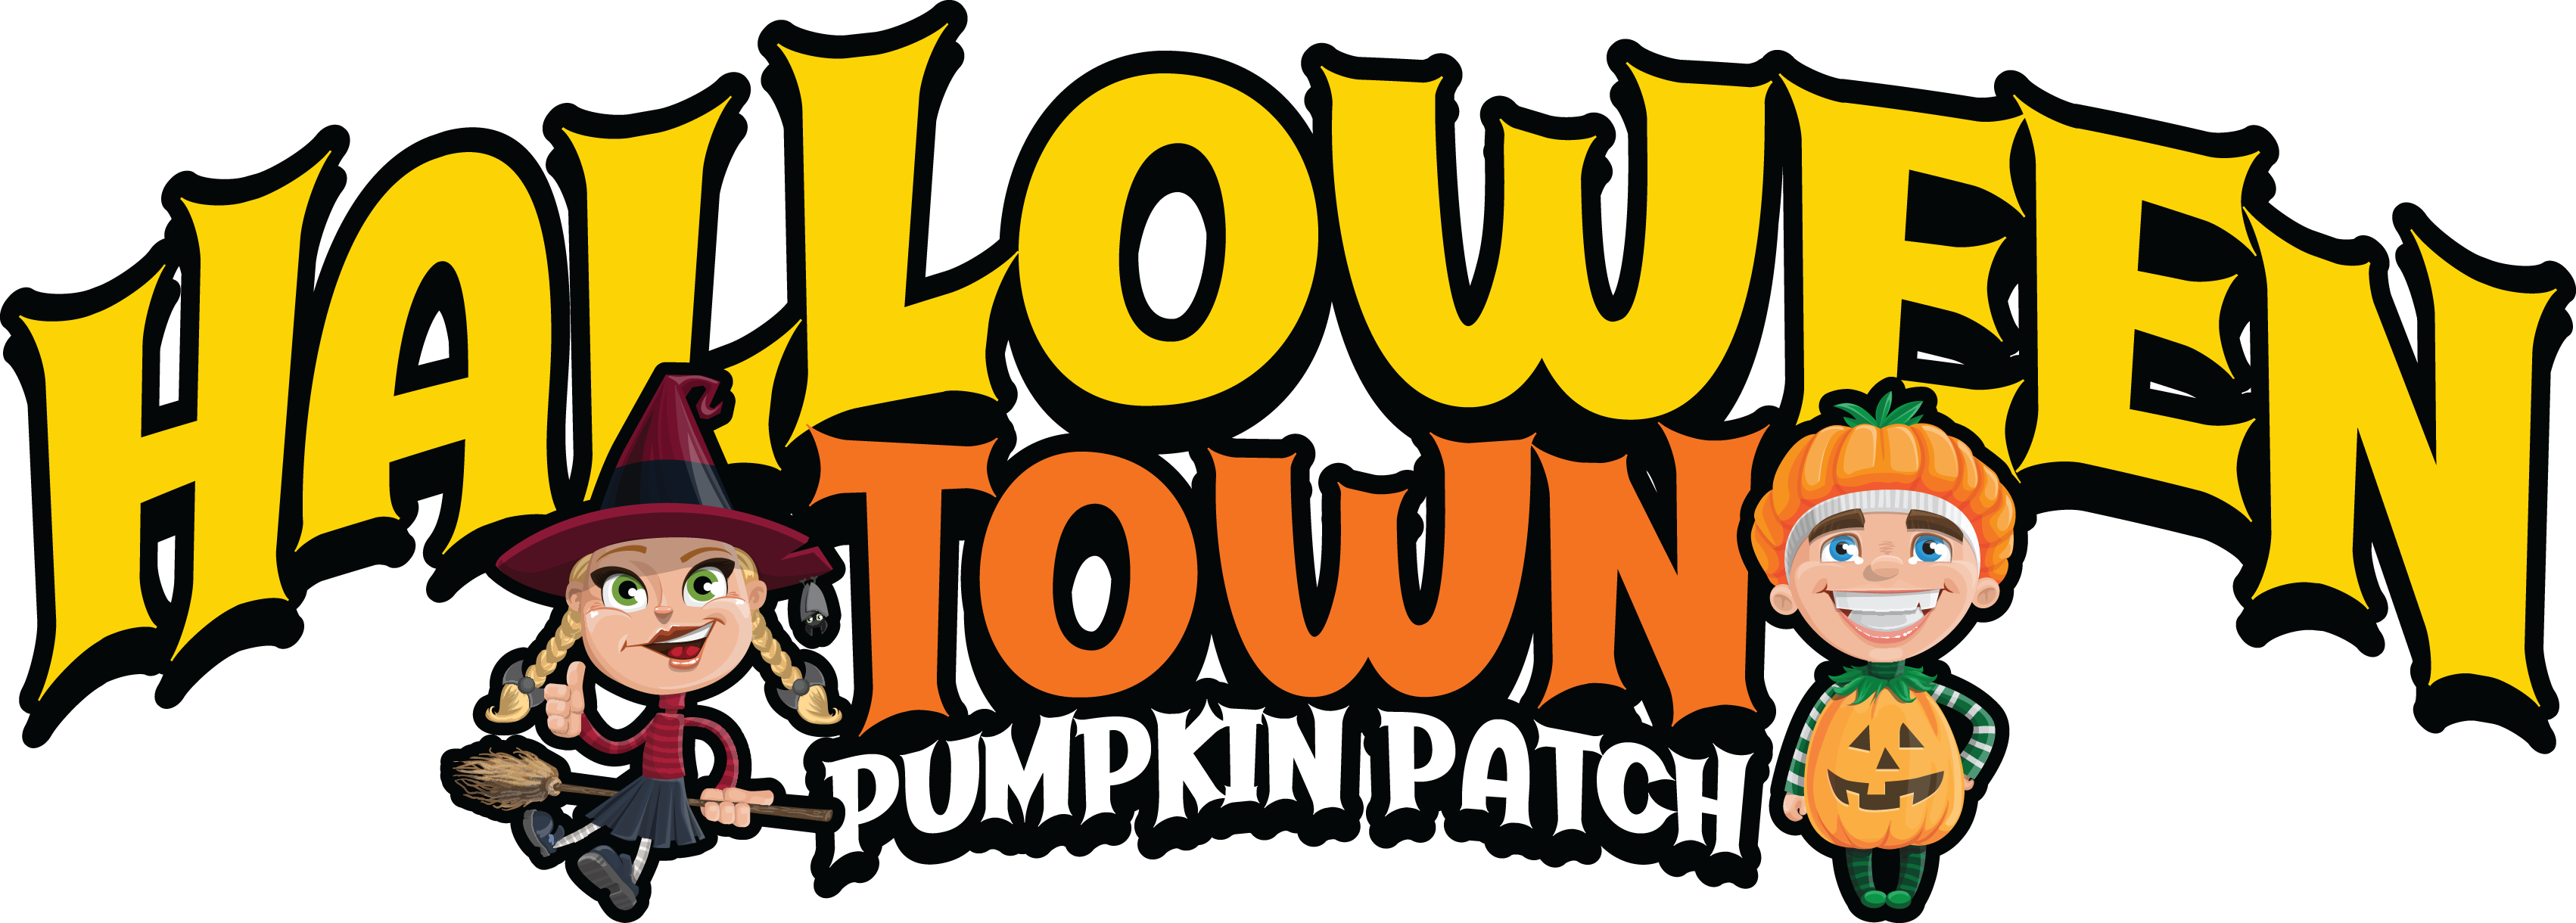 Halloween Town word logo with characters